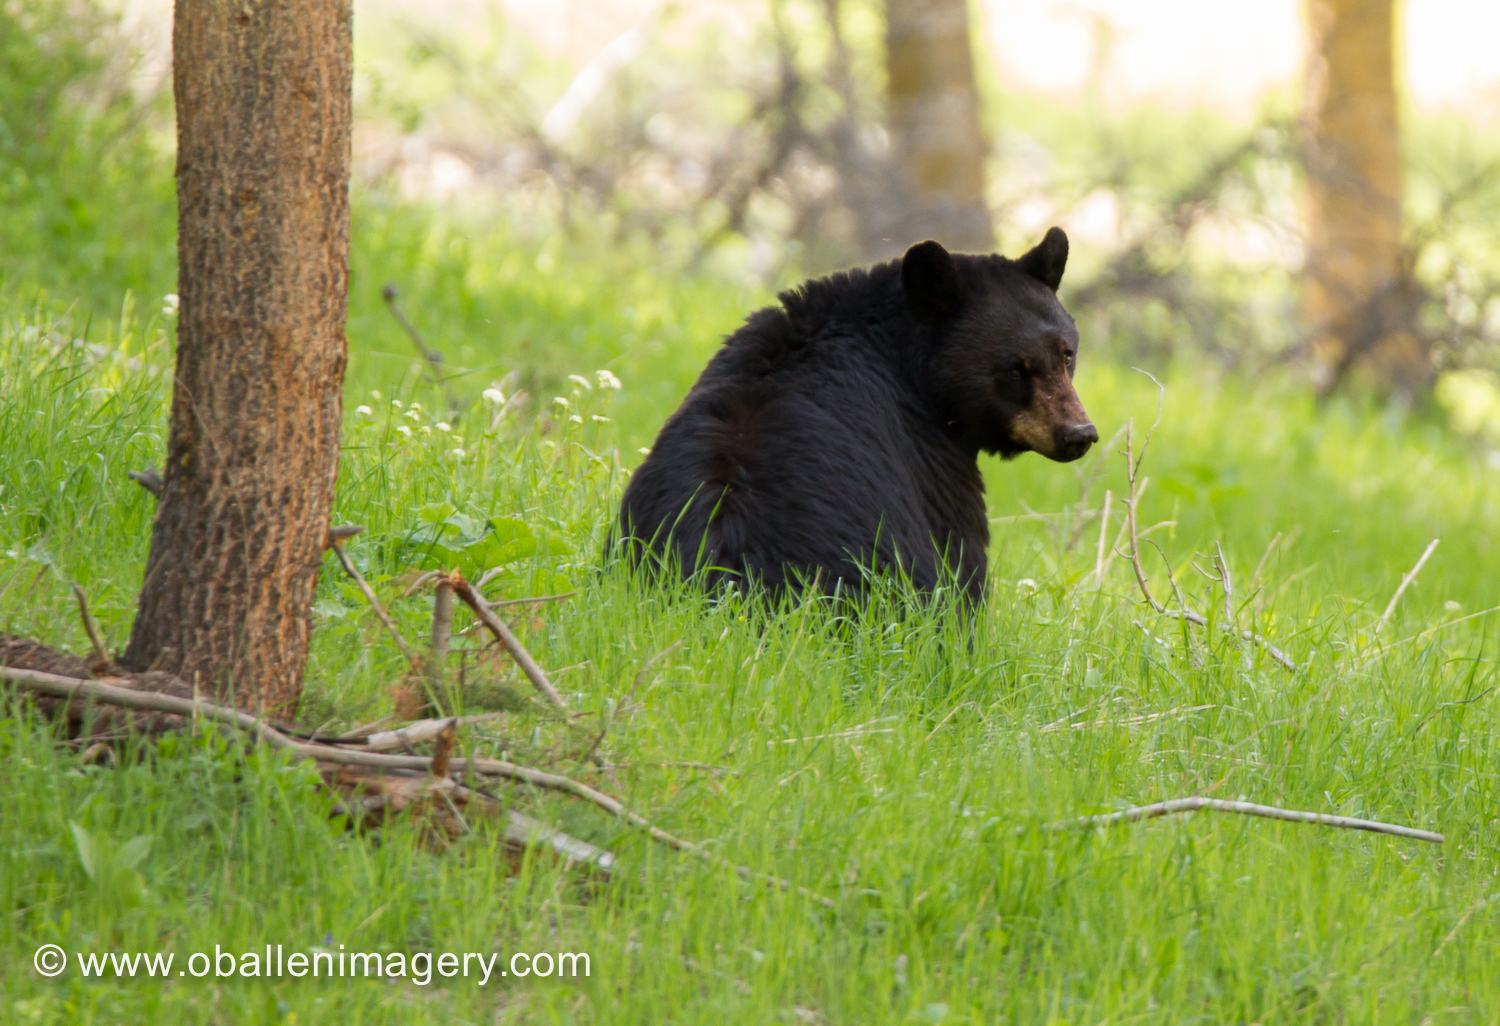 This bear was seen near the Roosevelt corrals.